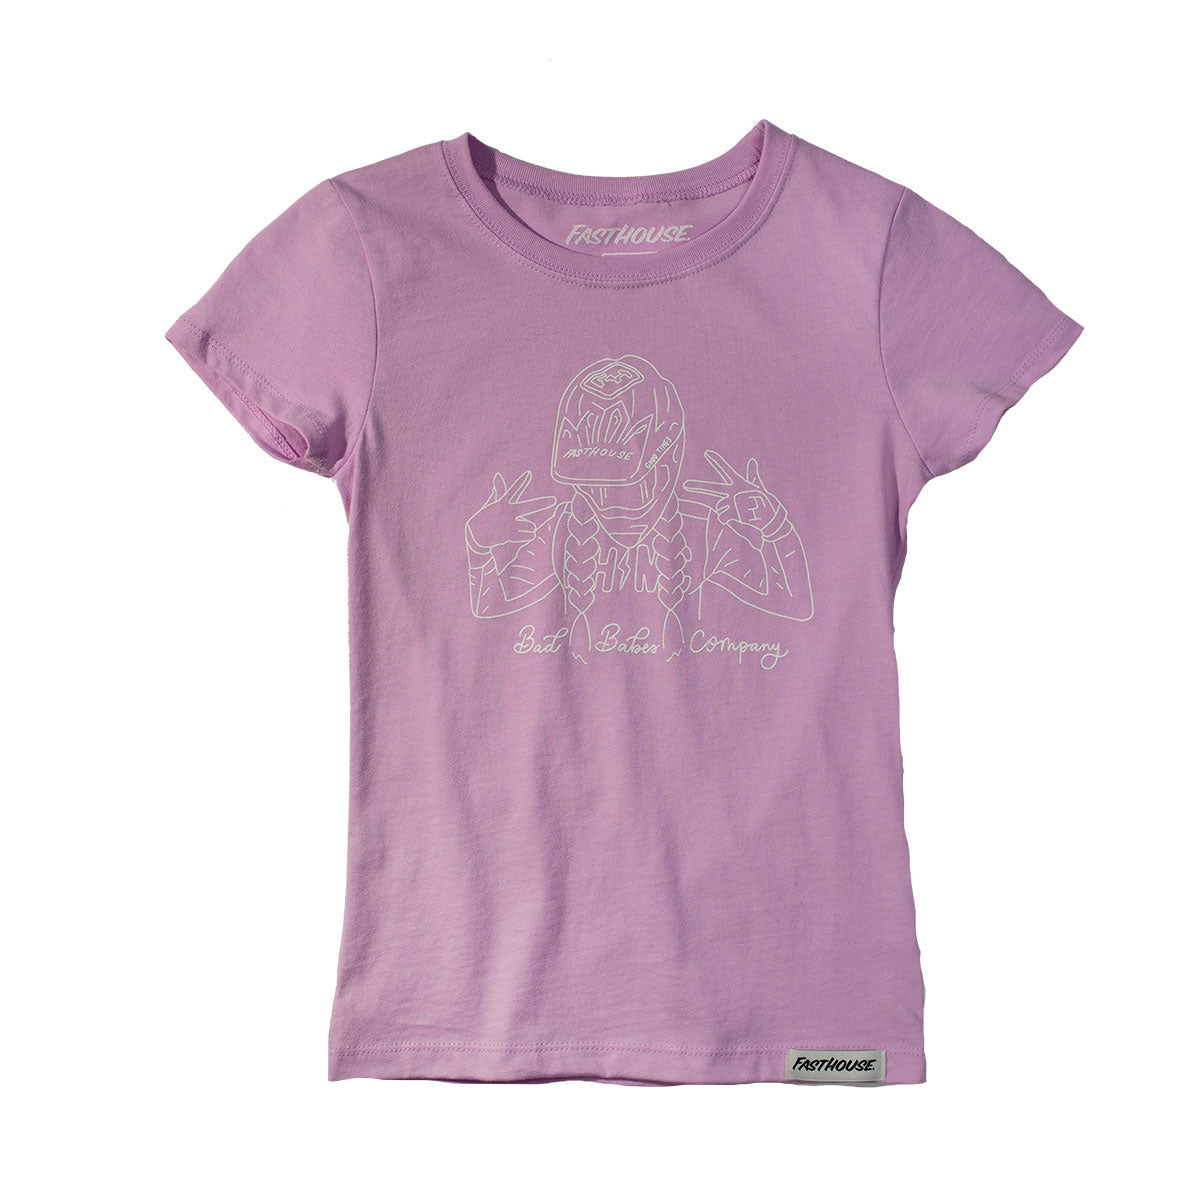 Fasthouse - Adorn Girls Tee - Lilac